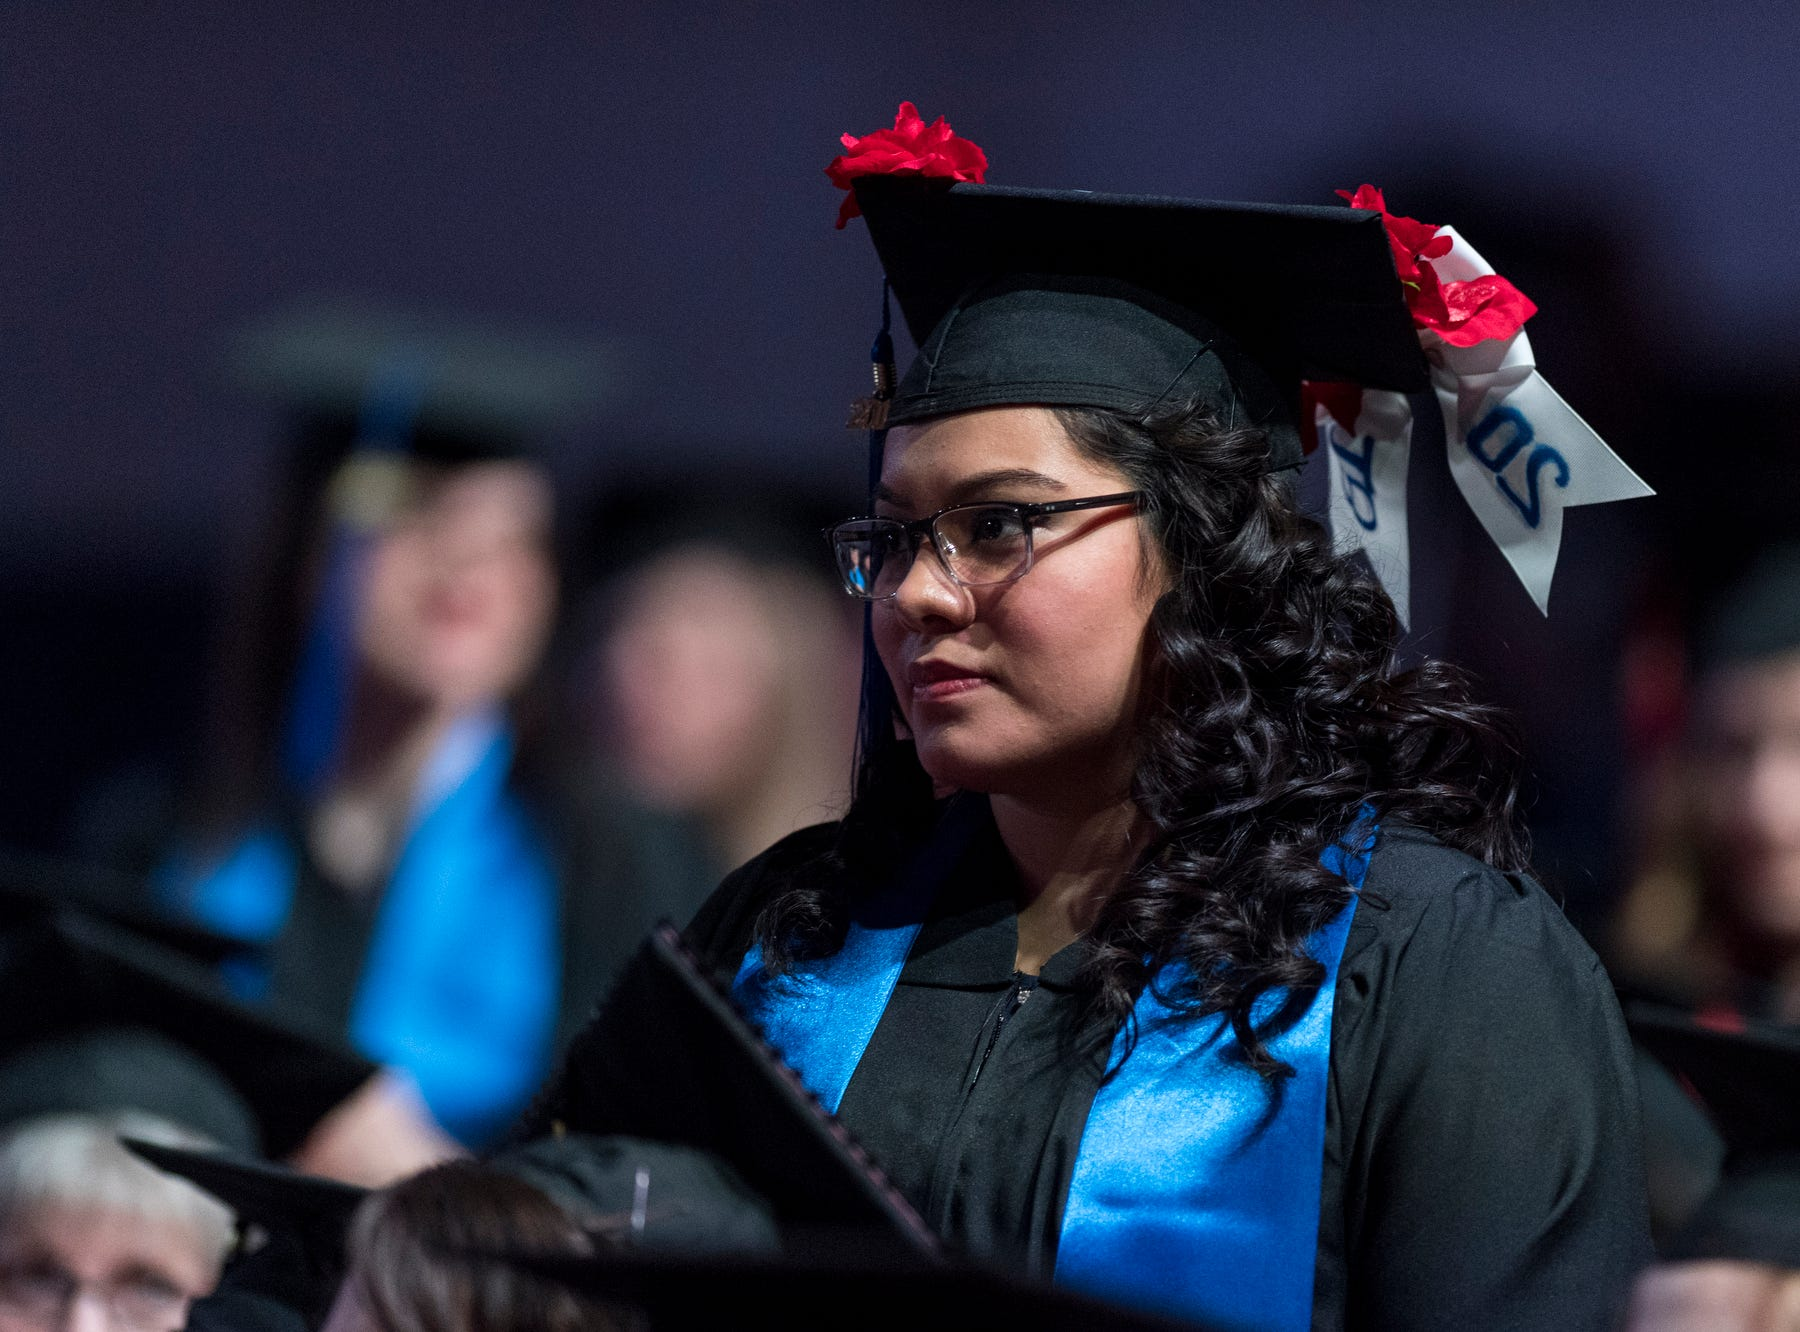 Rosalinda Ornelas of Huntingburg, Ind., stands to be recognized for graduating cum laude honors during the fall commencement ceremony for the University of Southern Indiana's College of Liberal Arts and the Romain College of Business inside the school's Physical Activities Center in Evansville, Ind., Saturday, Dec. 8, 2018.